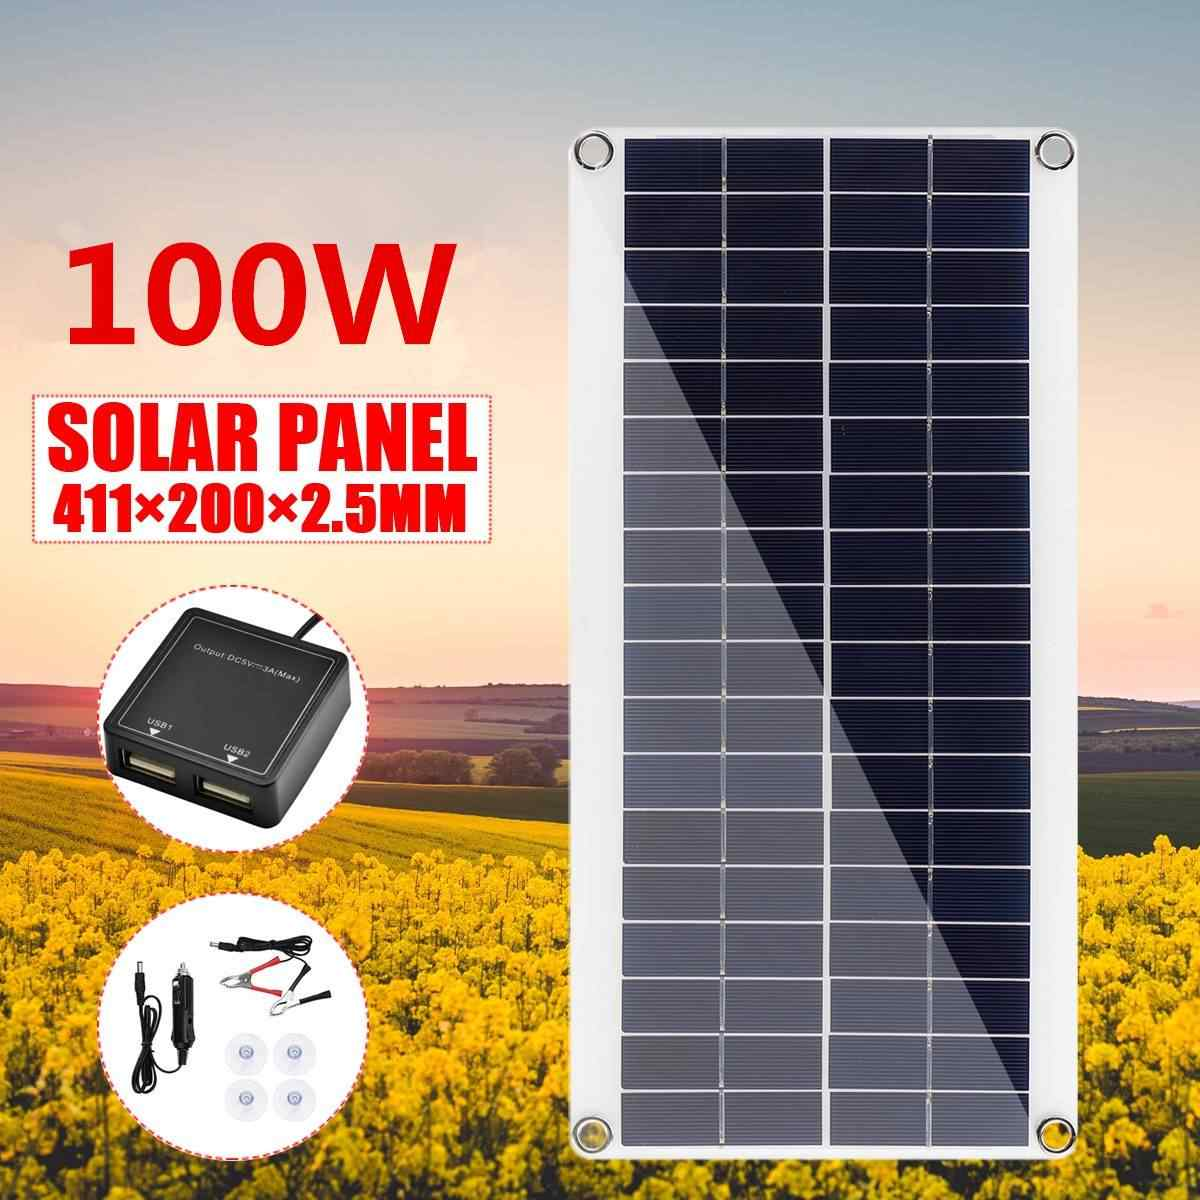 100w Dc 18v Solar Panel Battery Charger Portable Solar Cell Board Crocodile Clips Car Charger For Phone Rv Car 411x200x2 5mm Aliexpress